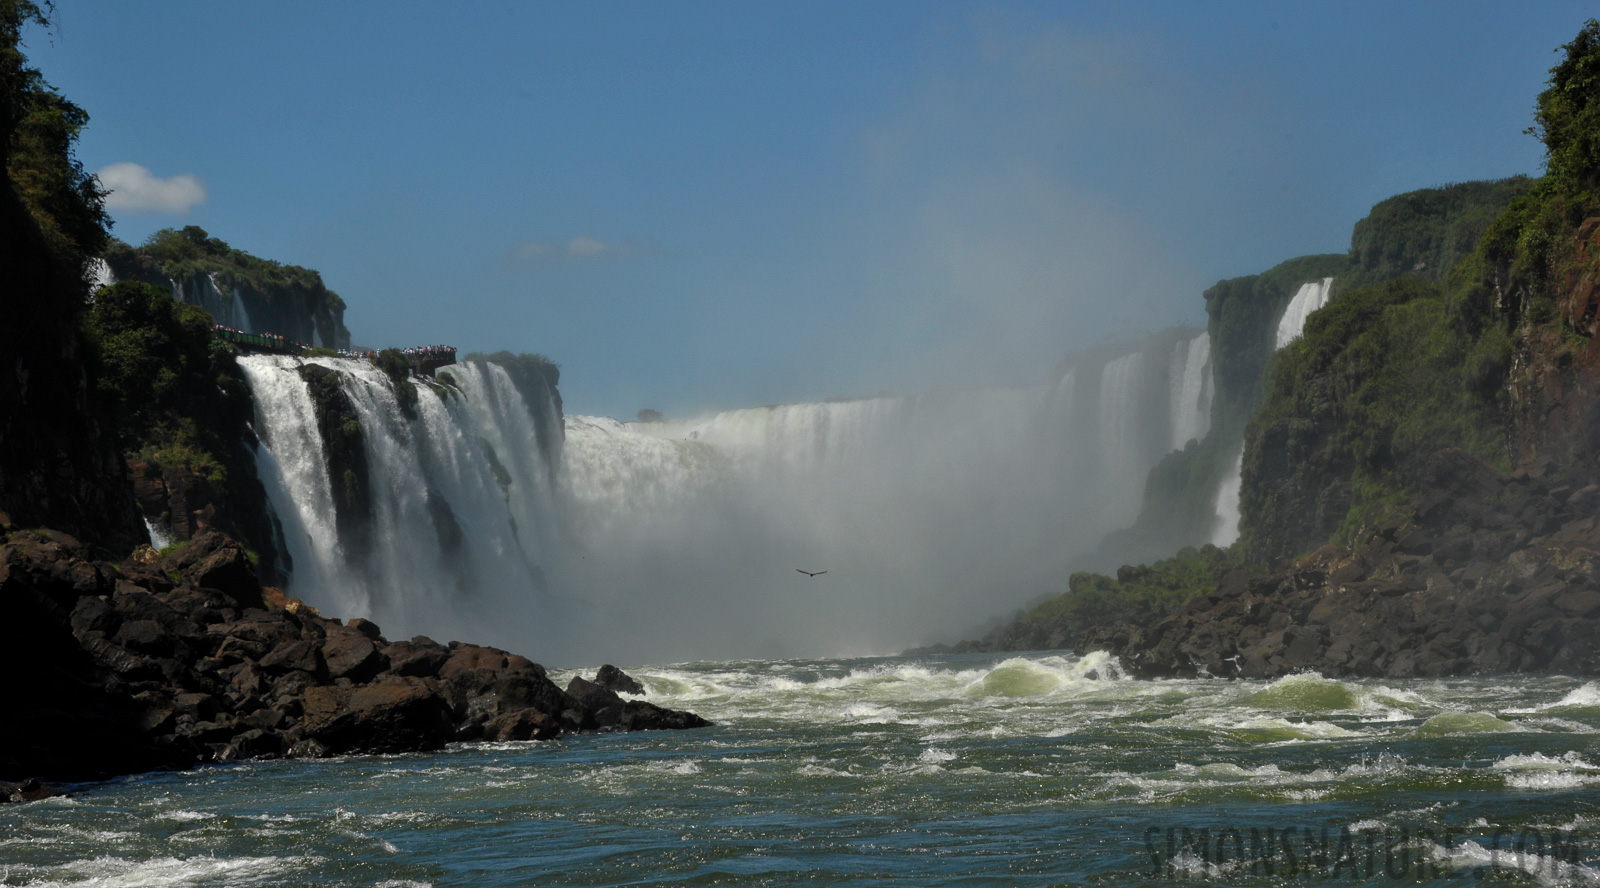 Cataratas del Iguazu [90 mm, 1/1000 sec at f / 13, ISO 800]